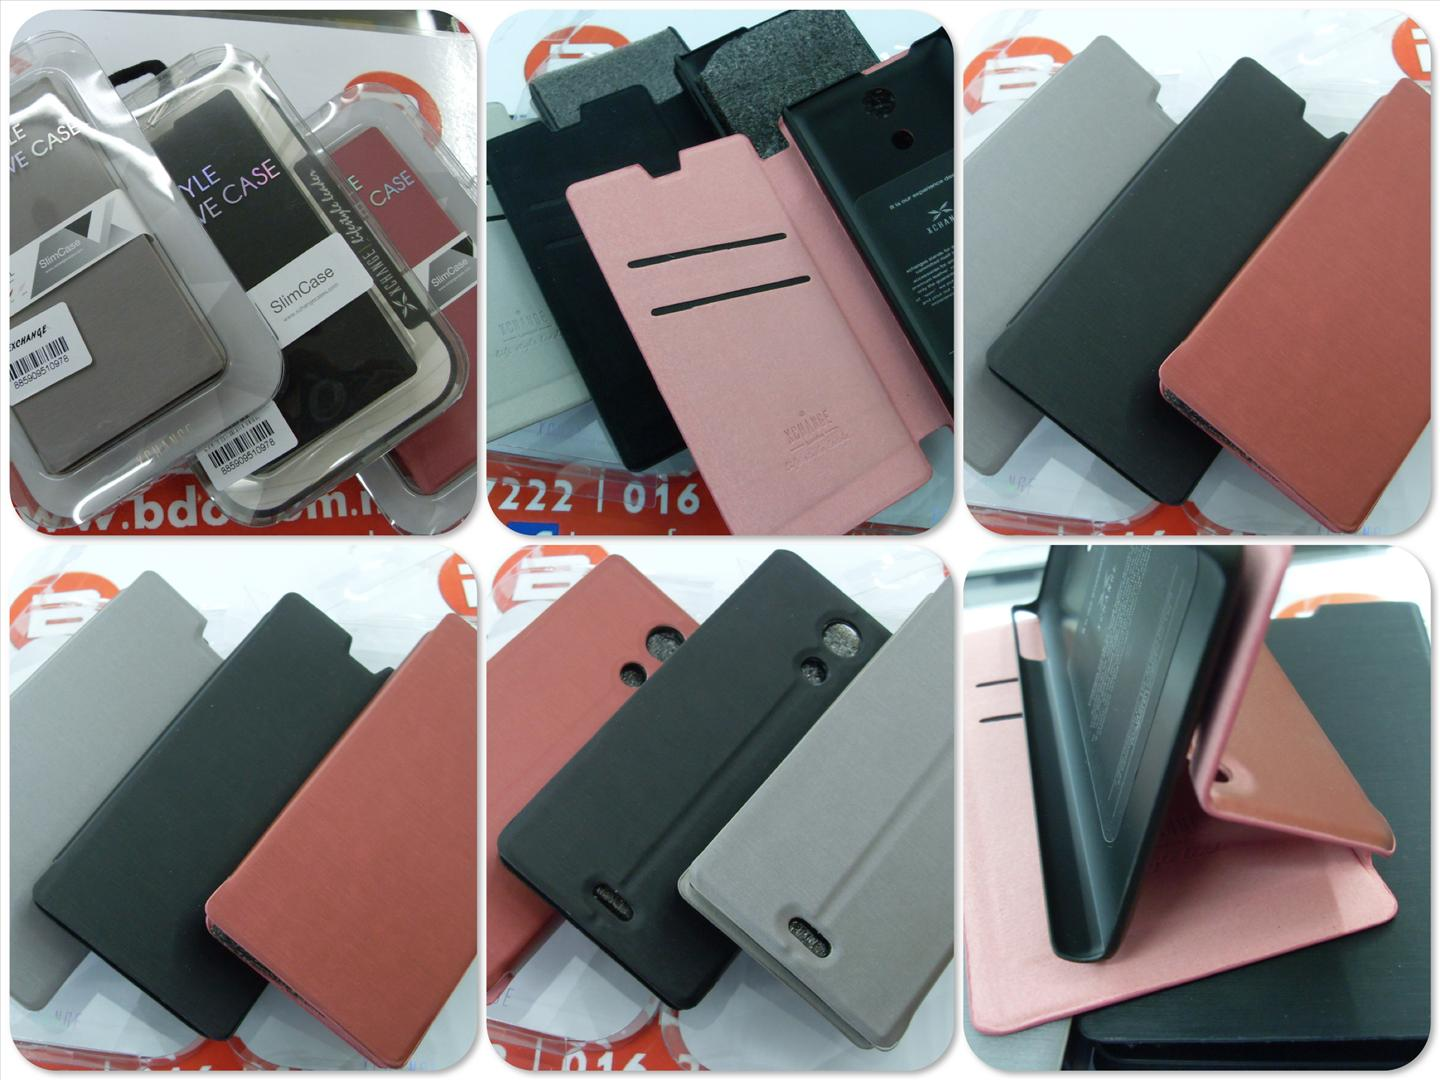 bdotcom = Sony Xperia ZL leather case =